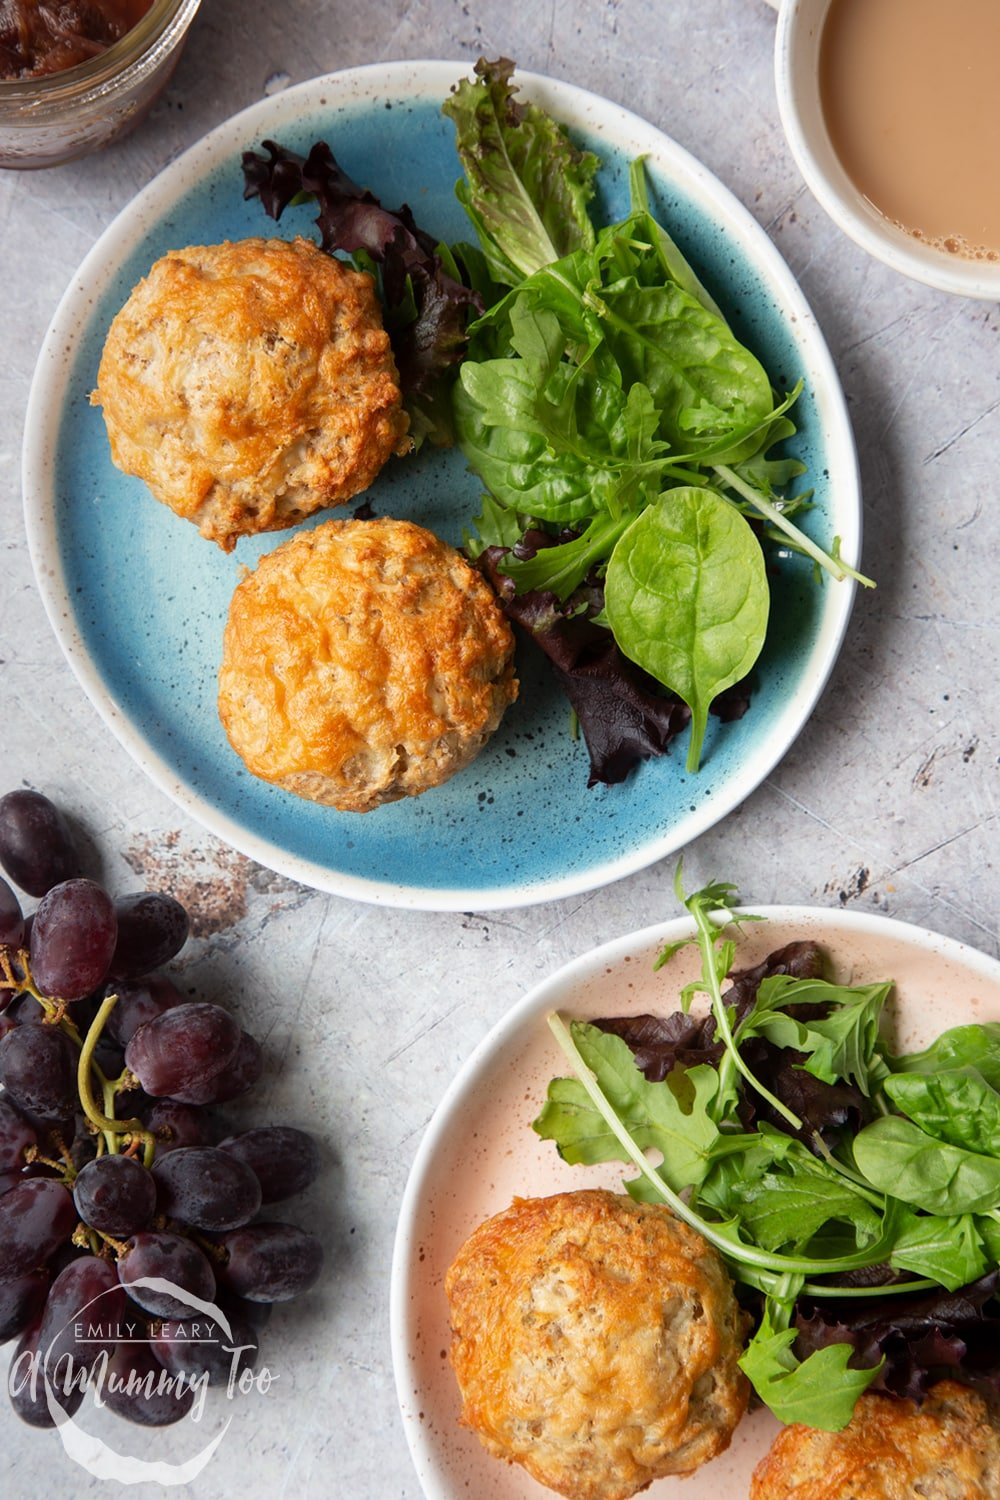 Easy cheese muffins served to two plates with leafy salad.